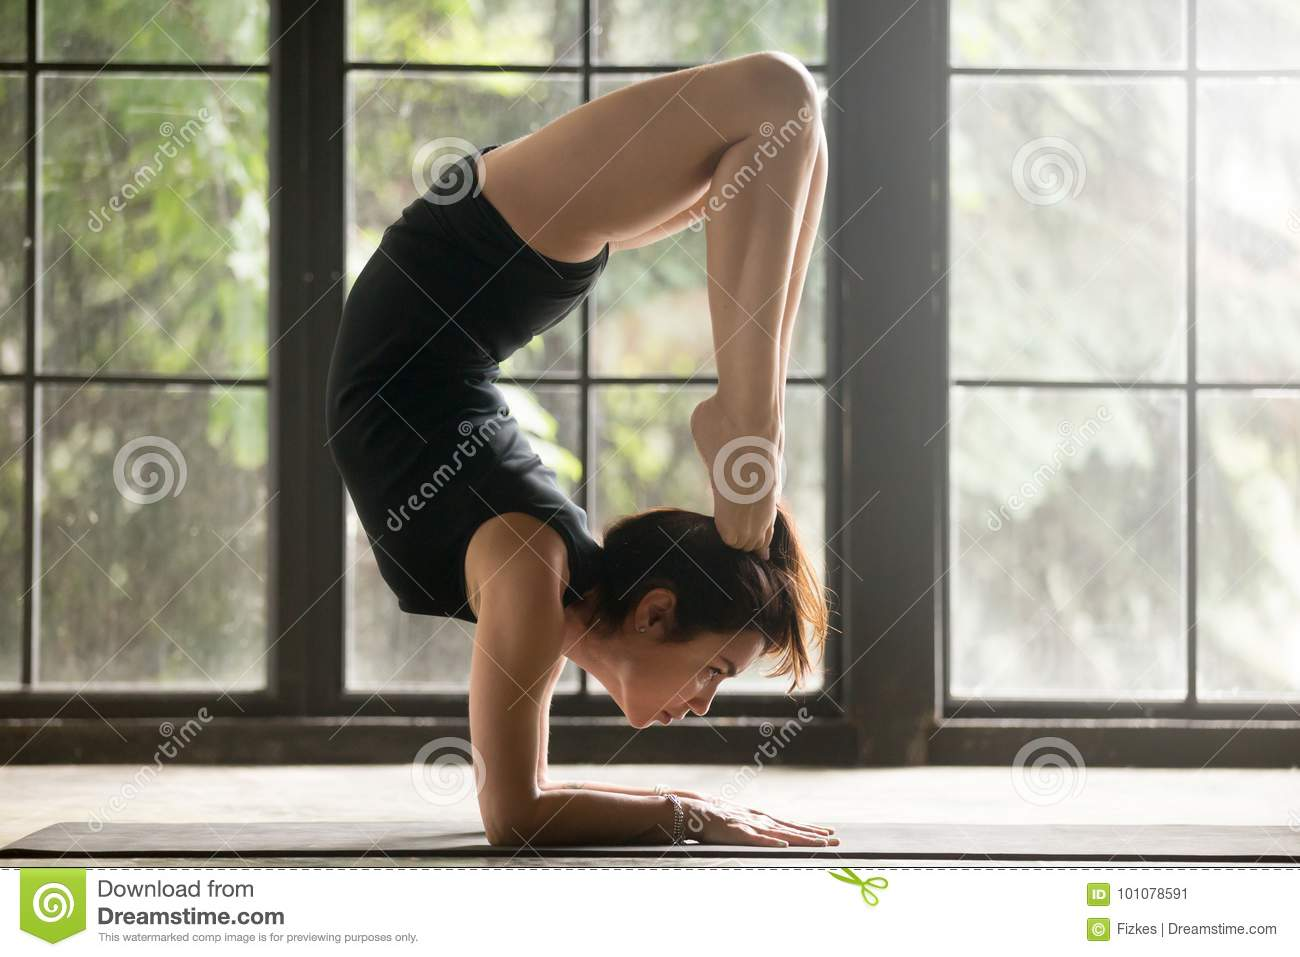 c07d76cdc7984 Young Attractive Woman In Scorpion Pose, Studio Background Stock ...